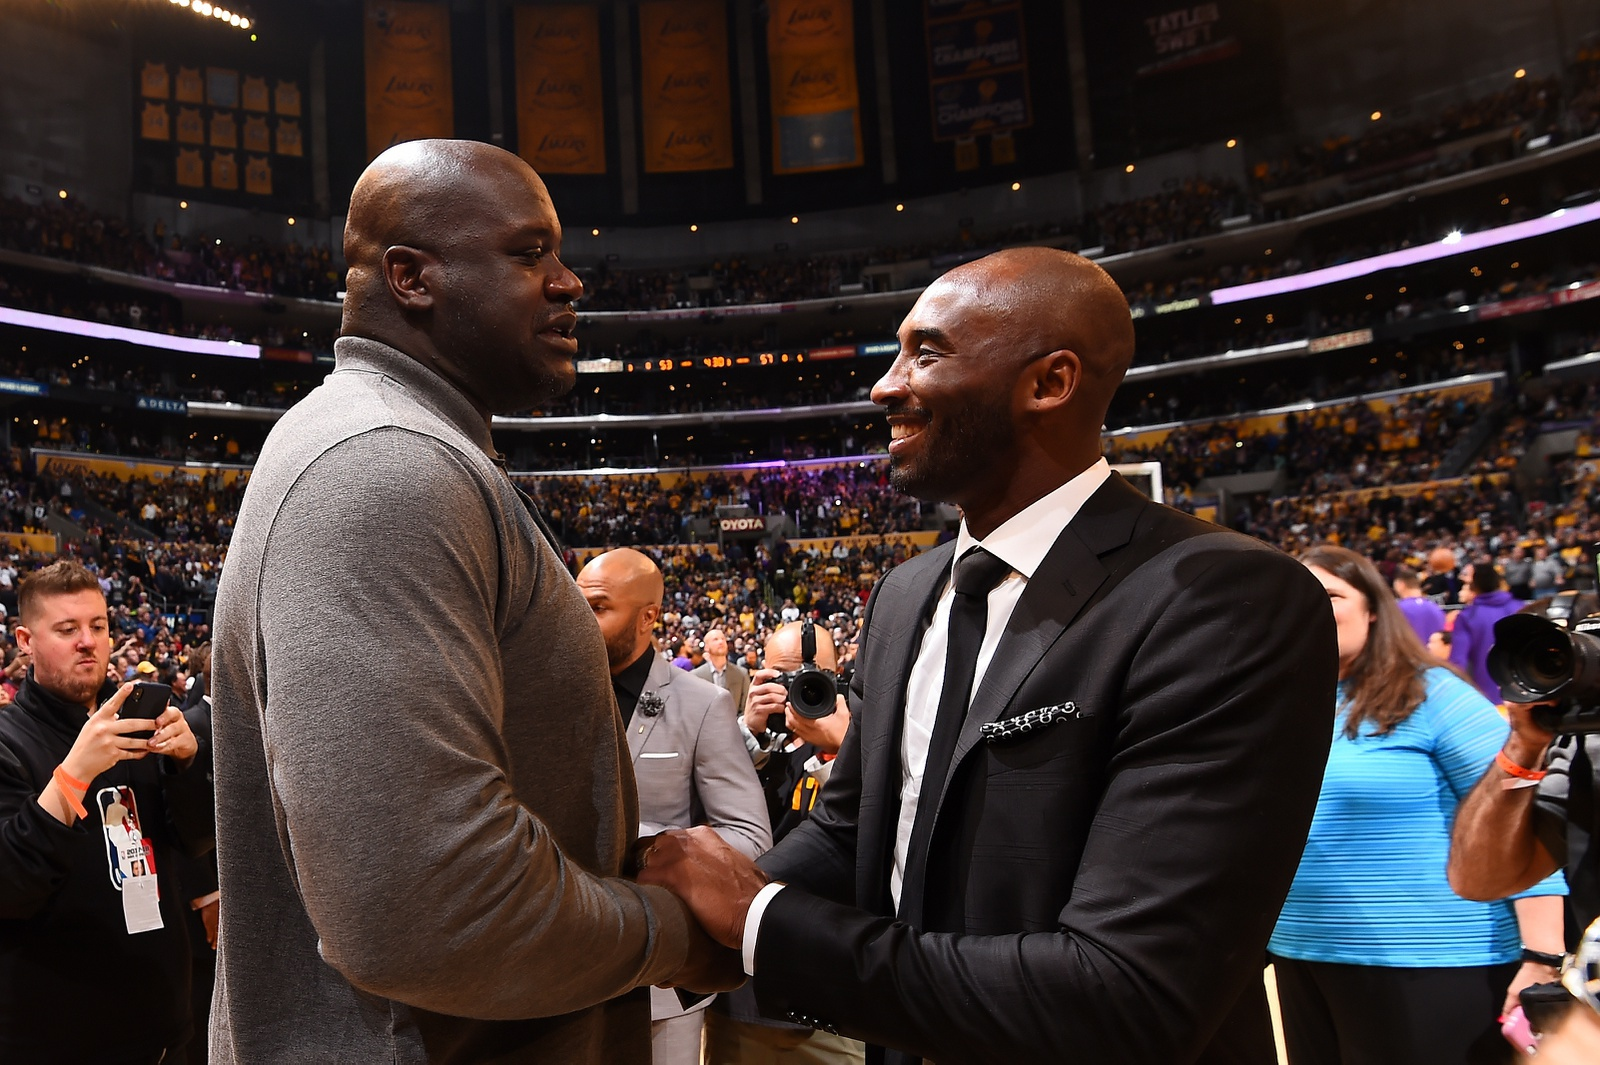 Shaquille O'Neal and Kobe Bryant greet after the jersey retirement ceremony on December 18, 2017 at STAPLES Center in Los Angeles, California.